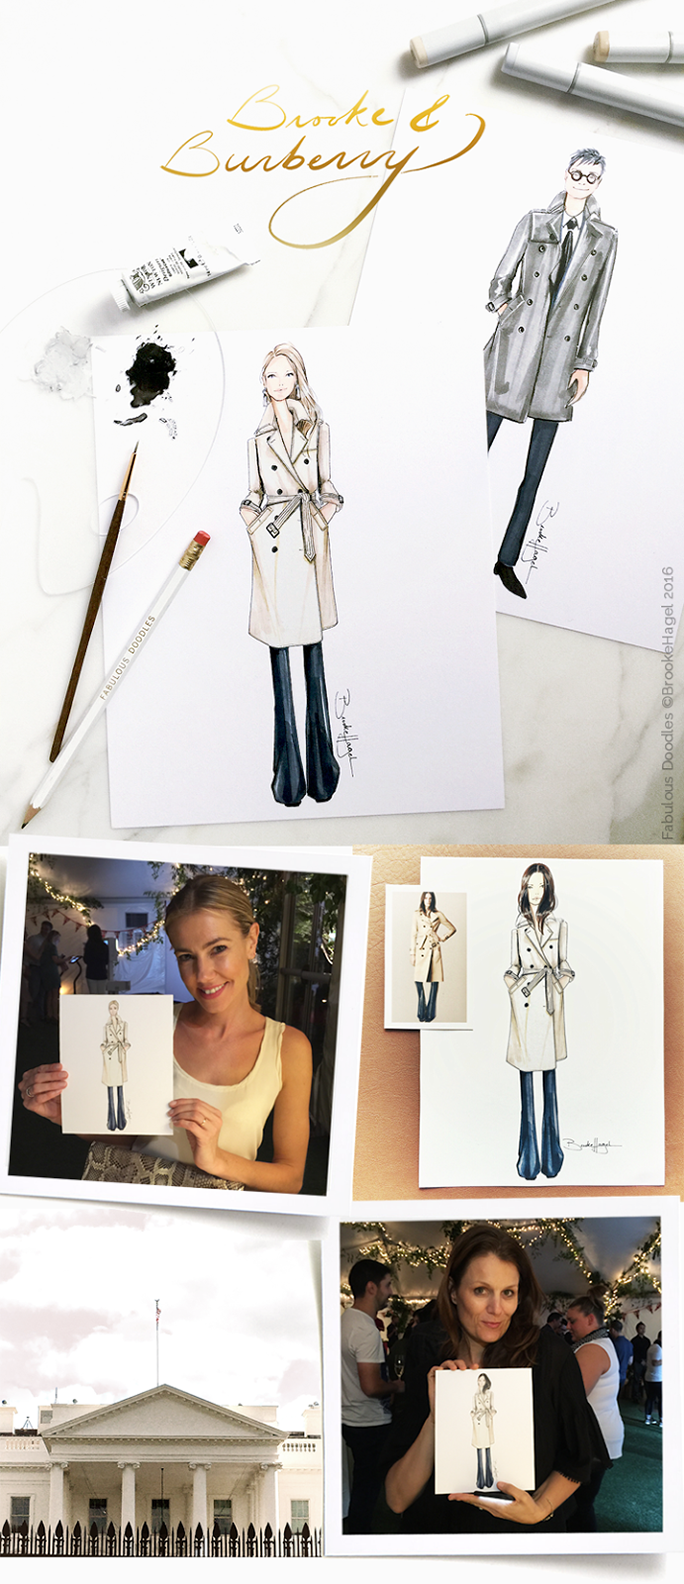 Burberry | Semi-Custom Fashion Illustrations  If you follow any of my social media you may have noticed over the past few months I've been working quite a bit with  Burberry . I wanted to share one particular event we collaborated together on here on Fabulous Doodles. A few weeks ago I live-sketched semi-custom fashion illustrations at a private party for Burberry down in Washington DC. The party was the culmination of their annual general managers conference, where Burberry employees from across both North and South America gathered. Since Burberry has such a rich history and brand identity I suggested doing something a little different for this live-sketching event. Instead of full custom illustrations of each Burberry employee in the party outfits they were wearing as I normally do, I pre-draw fashion illustration bodies of Burberry beauties and beau's in the classic Burberry trench coat. They loved the idea and its exactly what I did!...